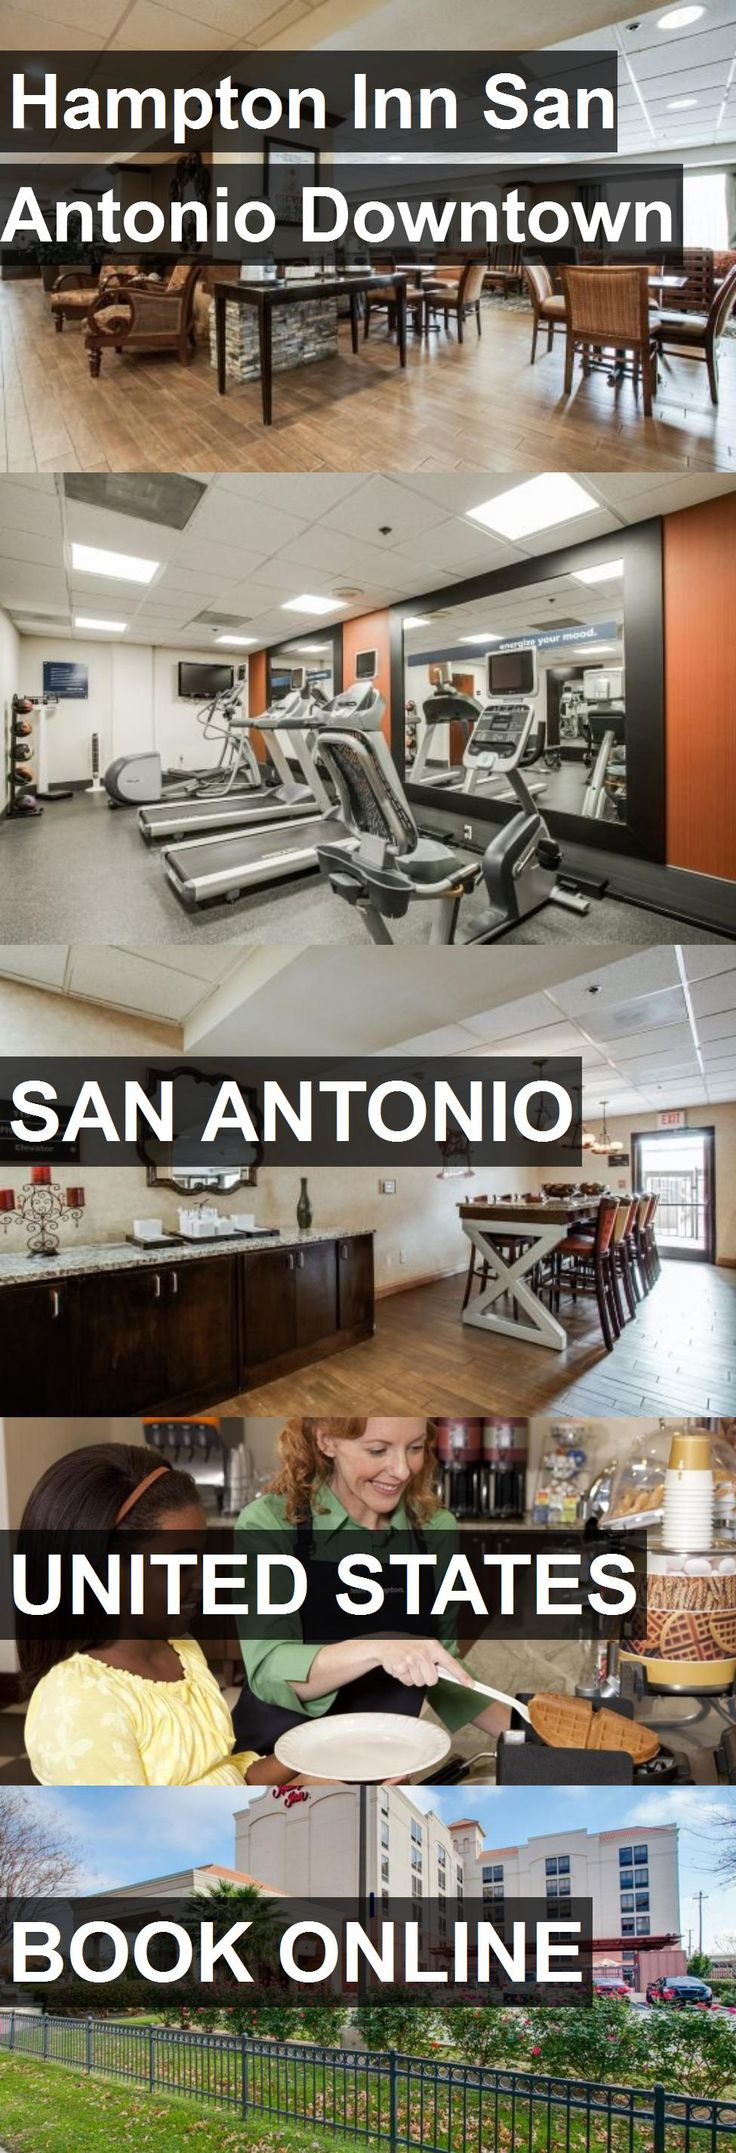 Hotel Hampton Inn San Antonio Downtown in San Antonio, United States. For more information, photos, reviews and best prices please follow the link. #UnitedStates #SanAntonio #travel #vacation #hotel